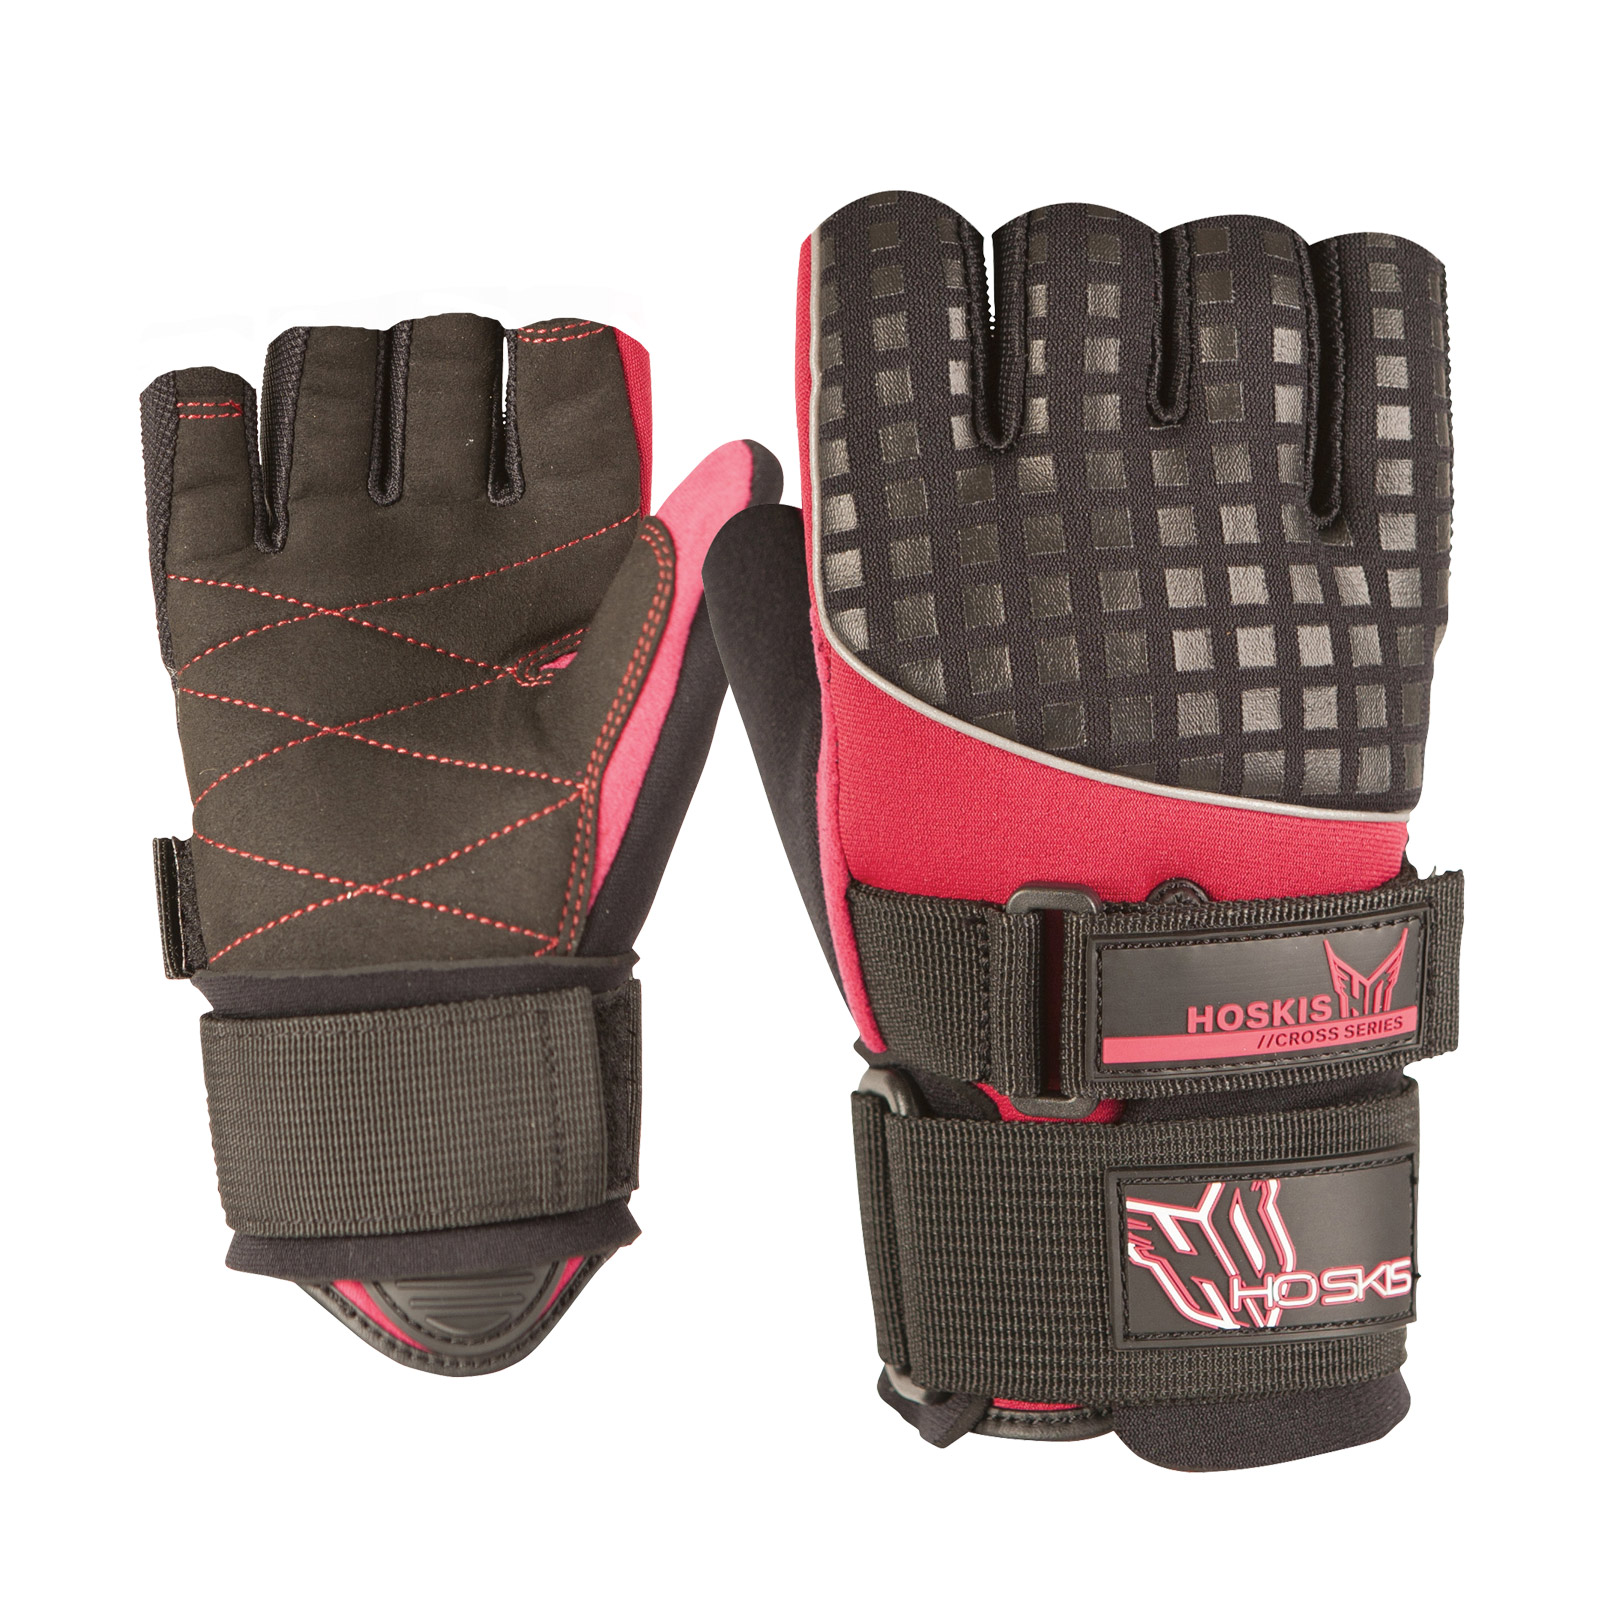 WOMENS WORLD CUP 3/4 GLOVE HO SPORTS 2017